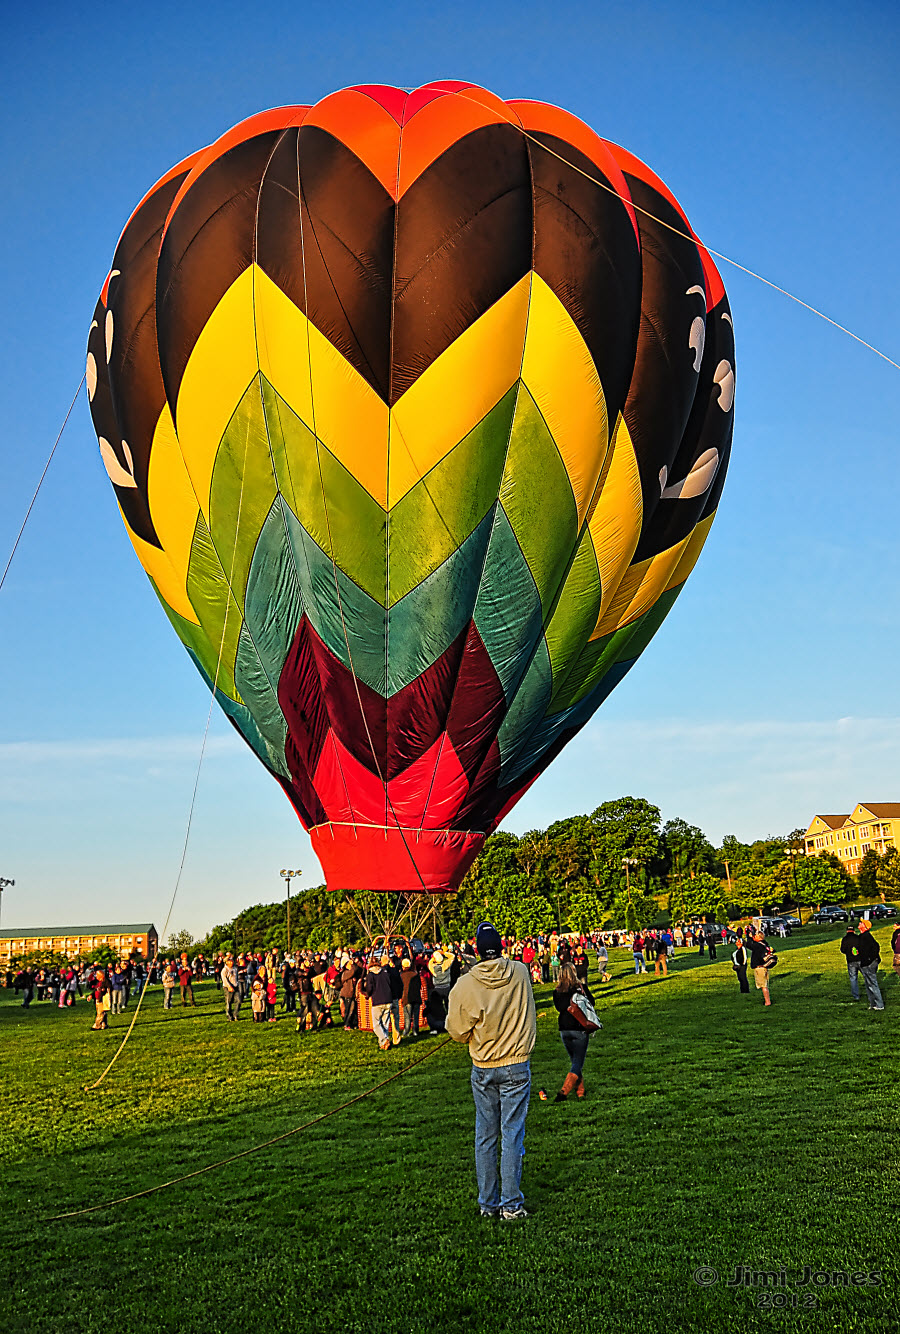 Hot Air Ballooning - Fully Inflated